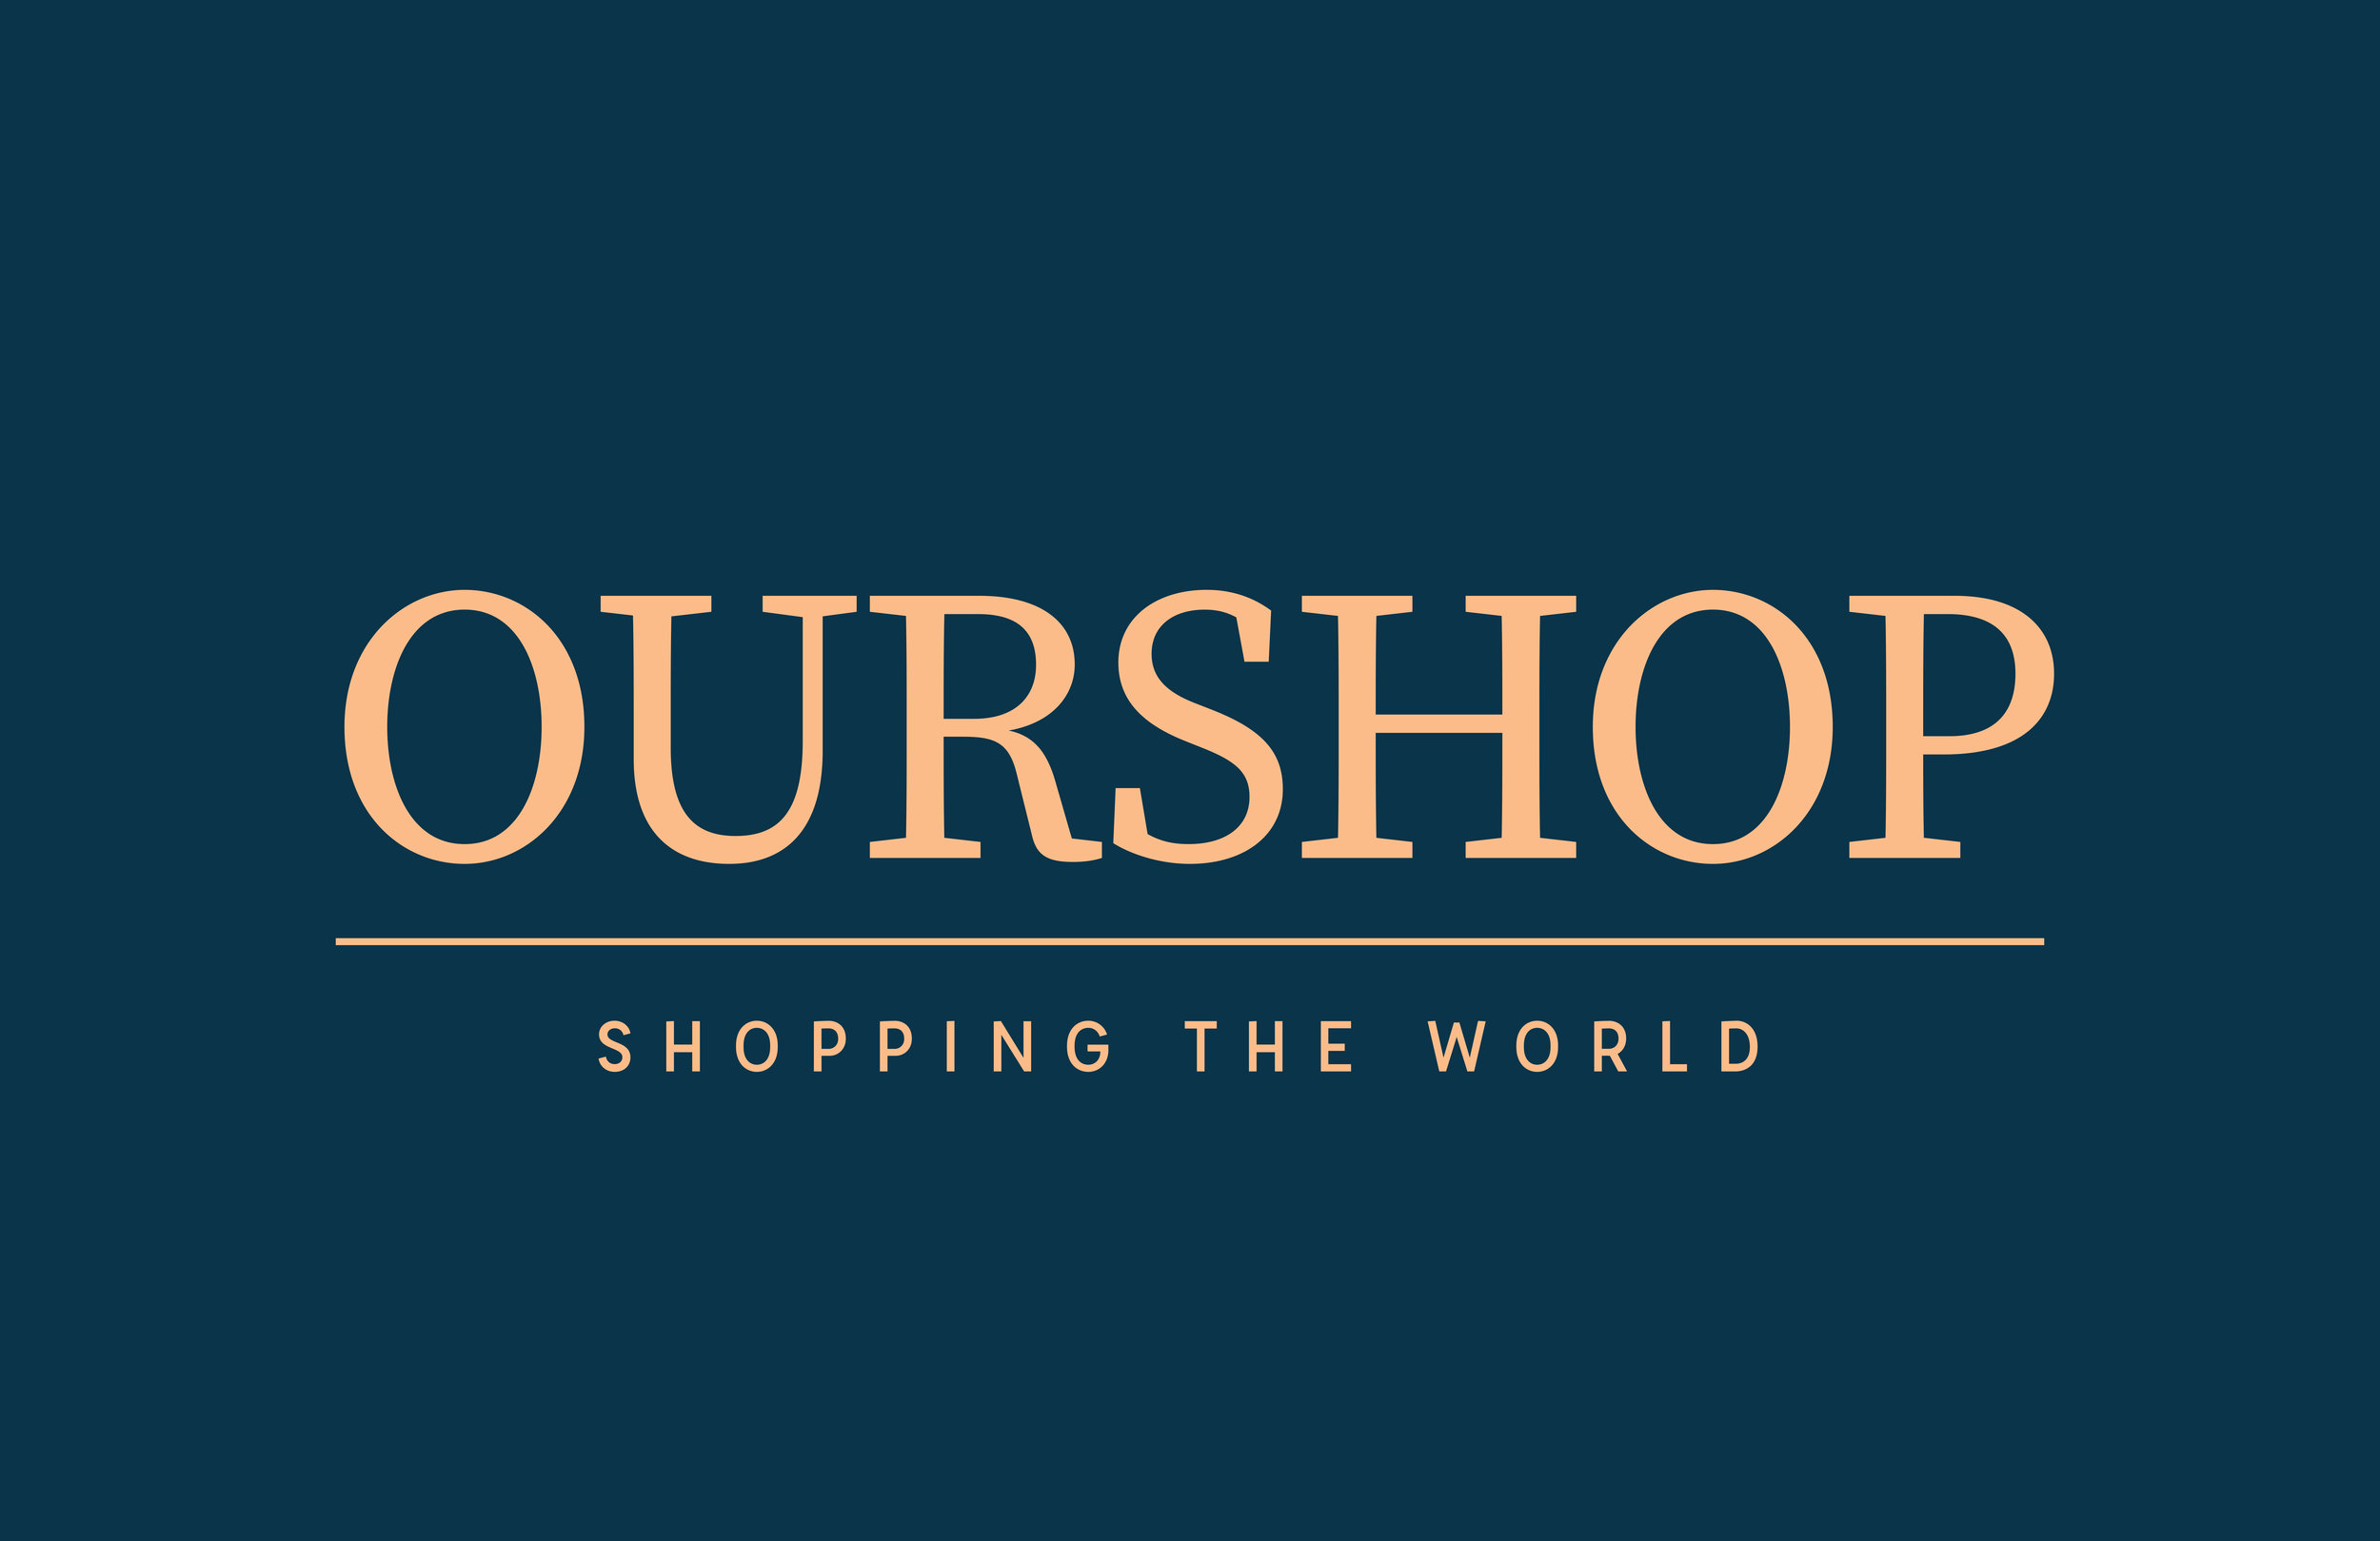 OURSHOP_Blue & Gold_Logo_Final.jpg